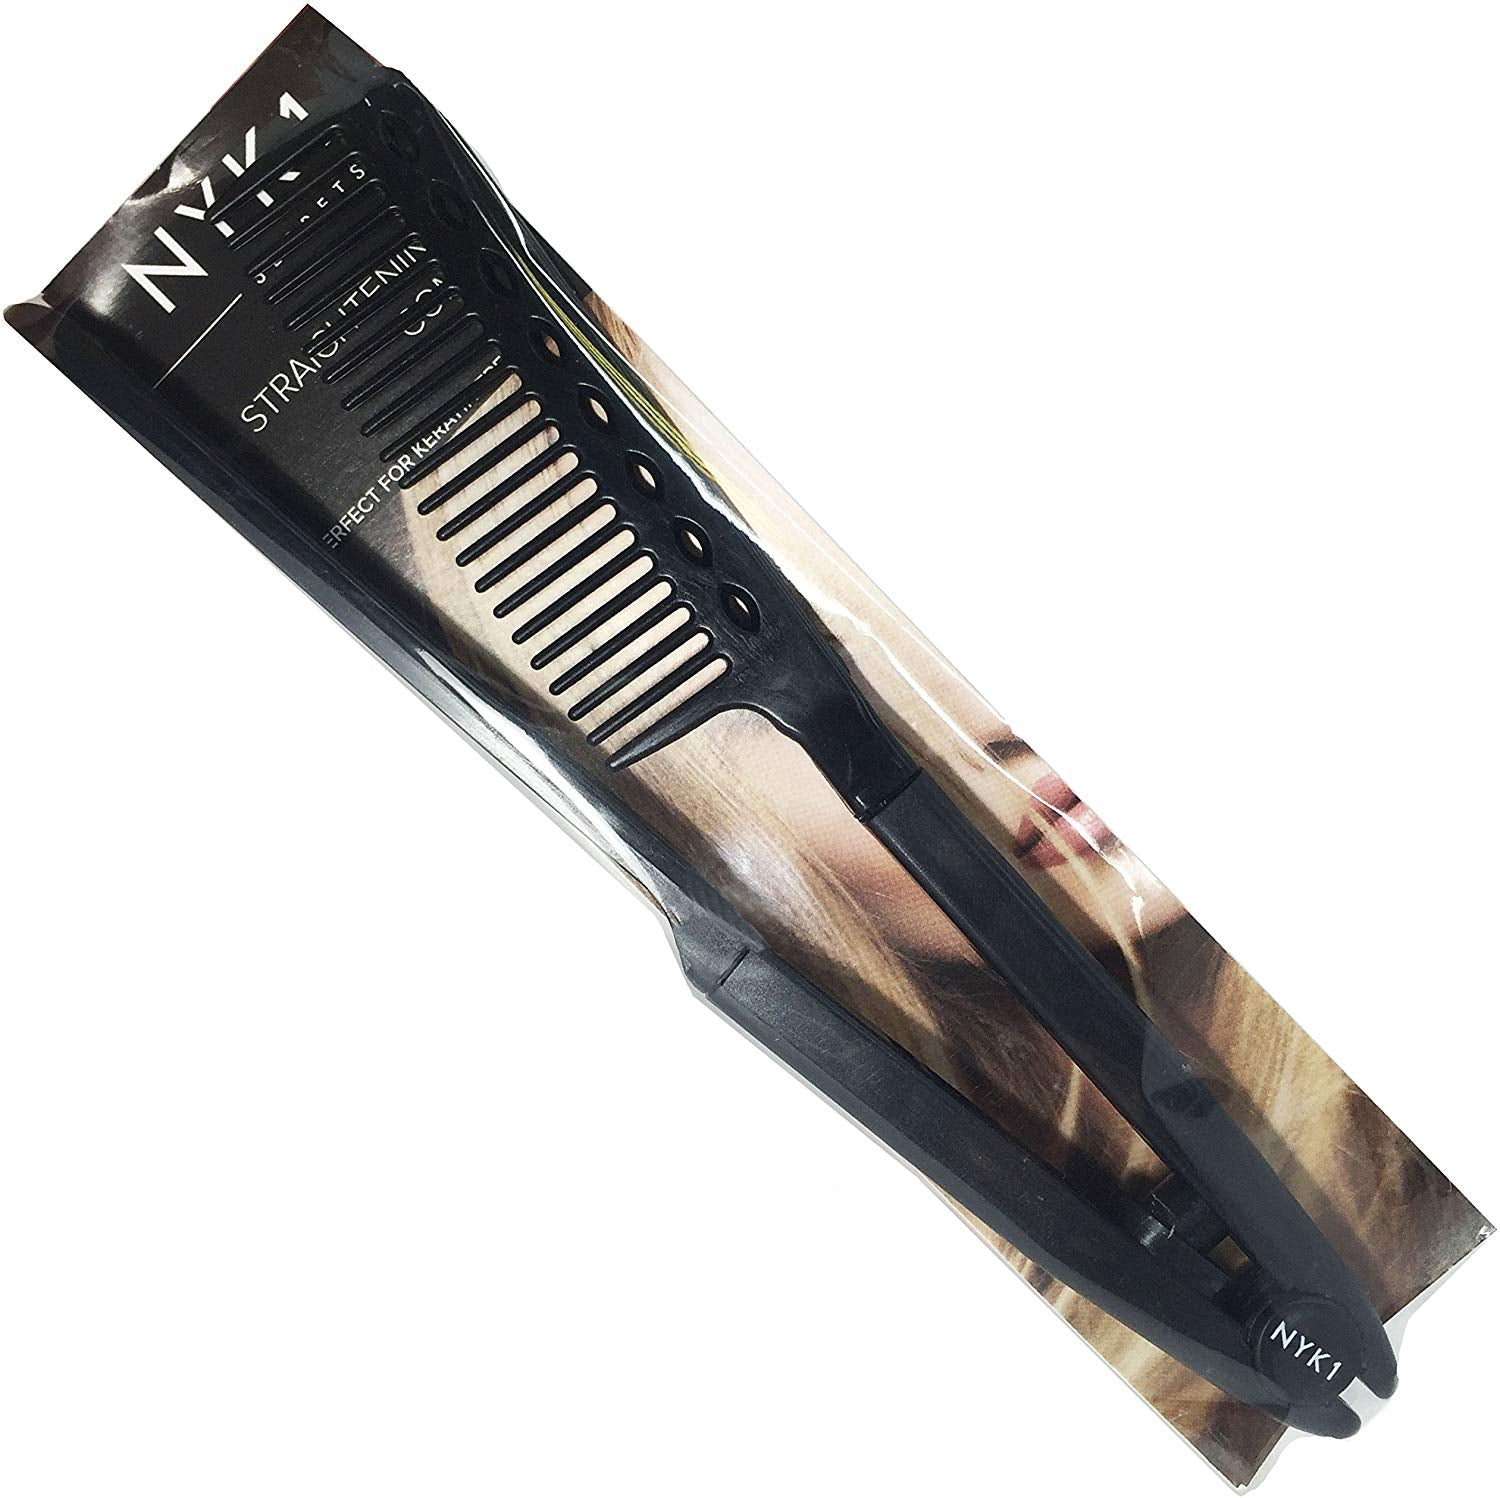 NYK1 Best Hair Straightening Comb Straightener